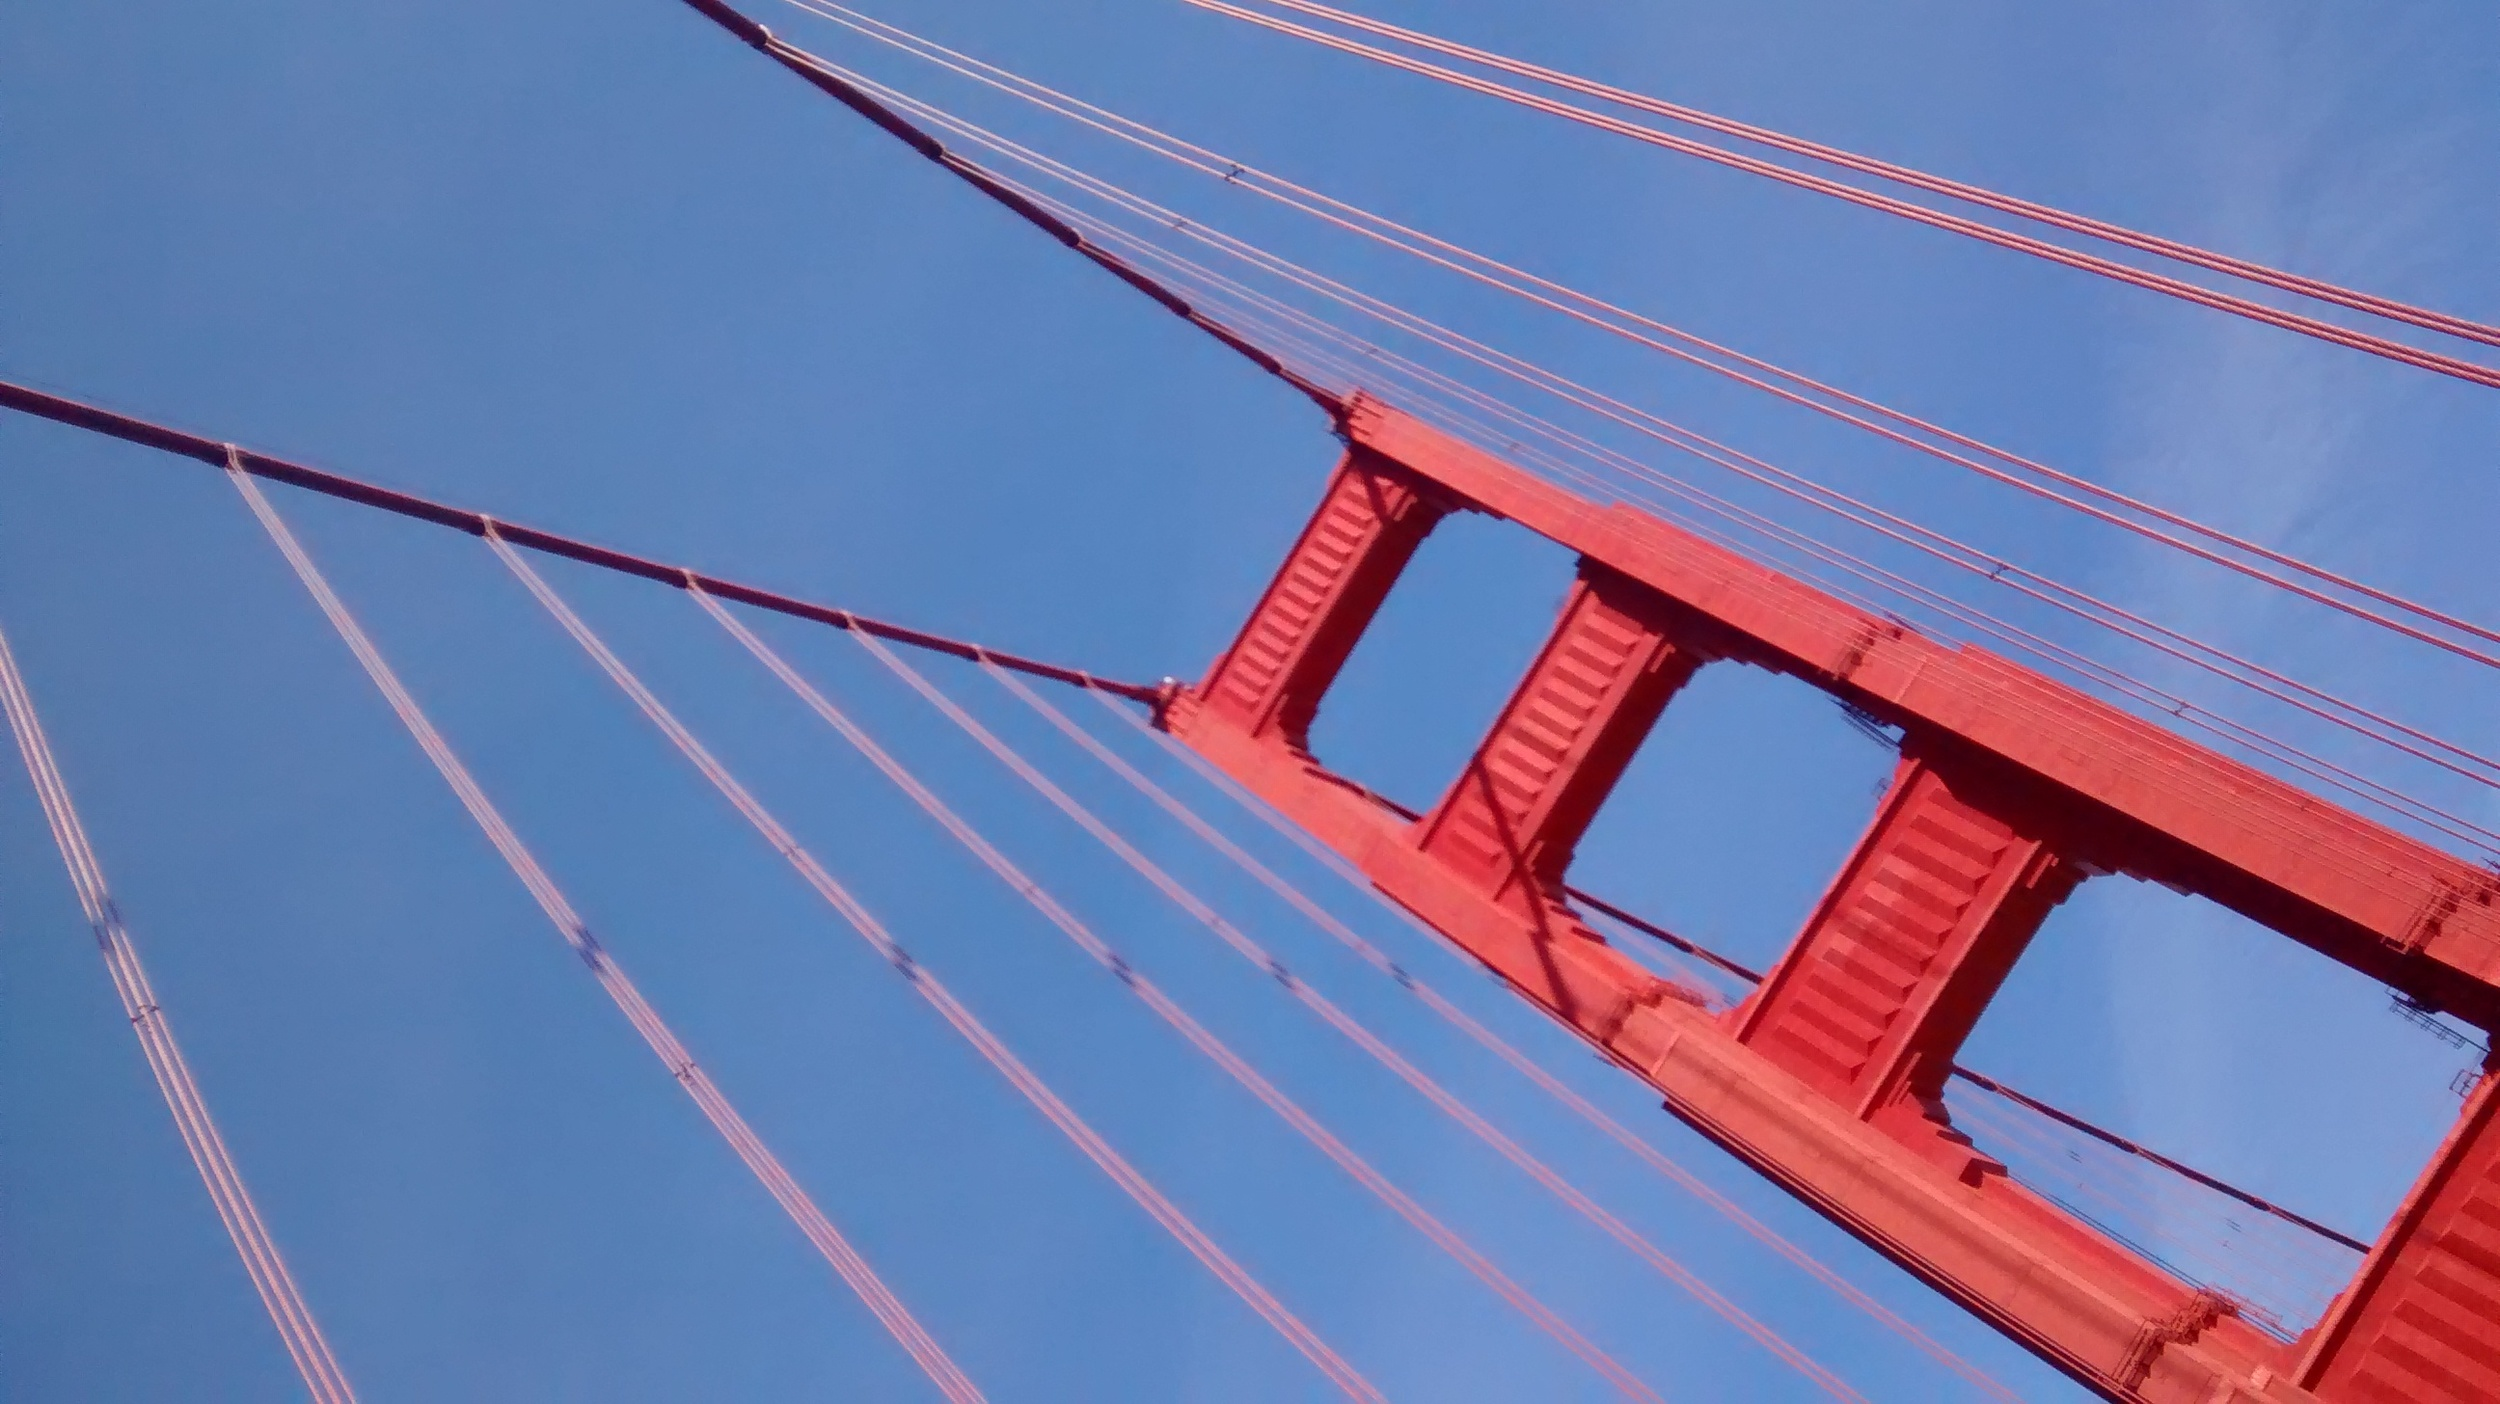 We went over the bridge 6 times on Saturday. Slight misunderstanding about the bus route and how to get to Sausalito...but I did perfect my bridge-photo-taking-skills with the practice.